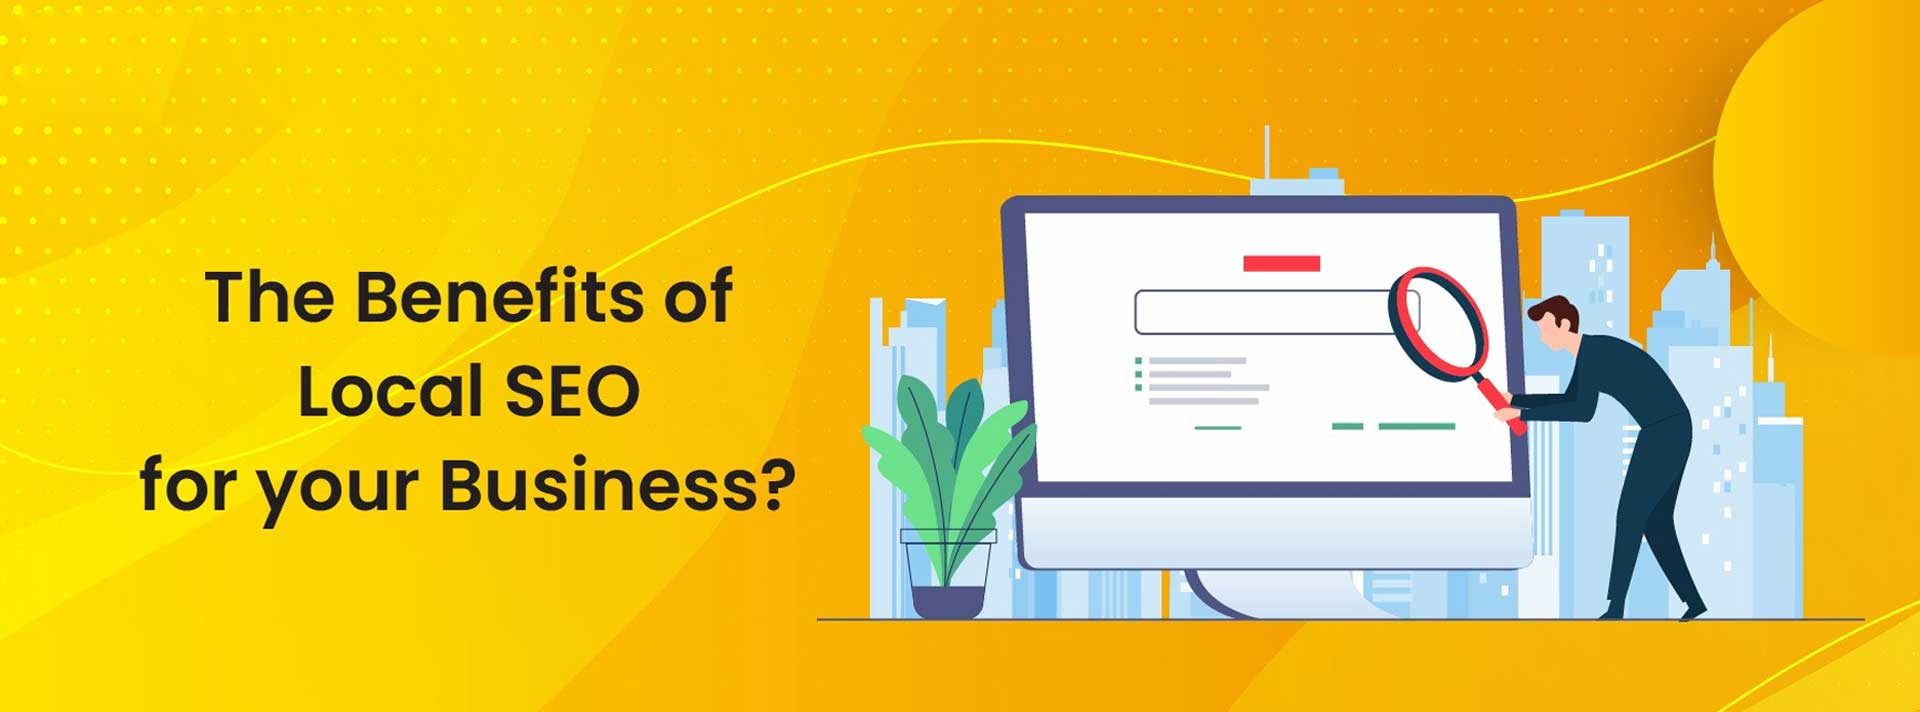 Benefits of Local SEO in 2021